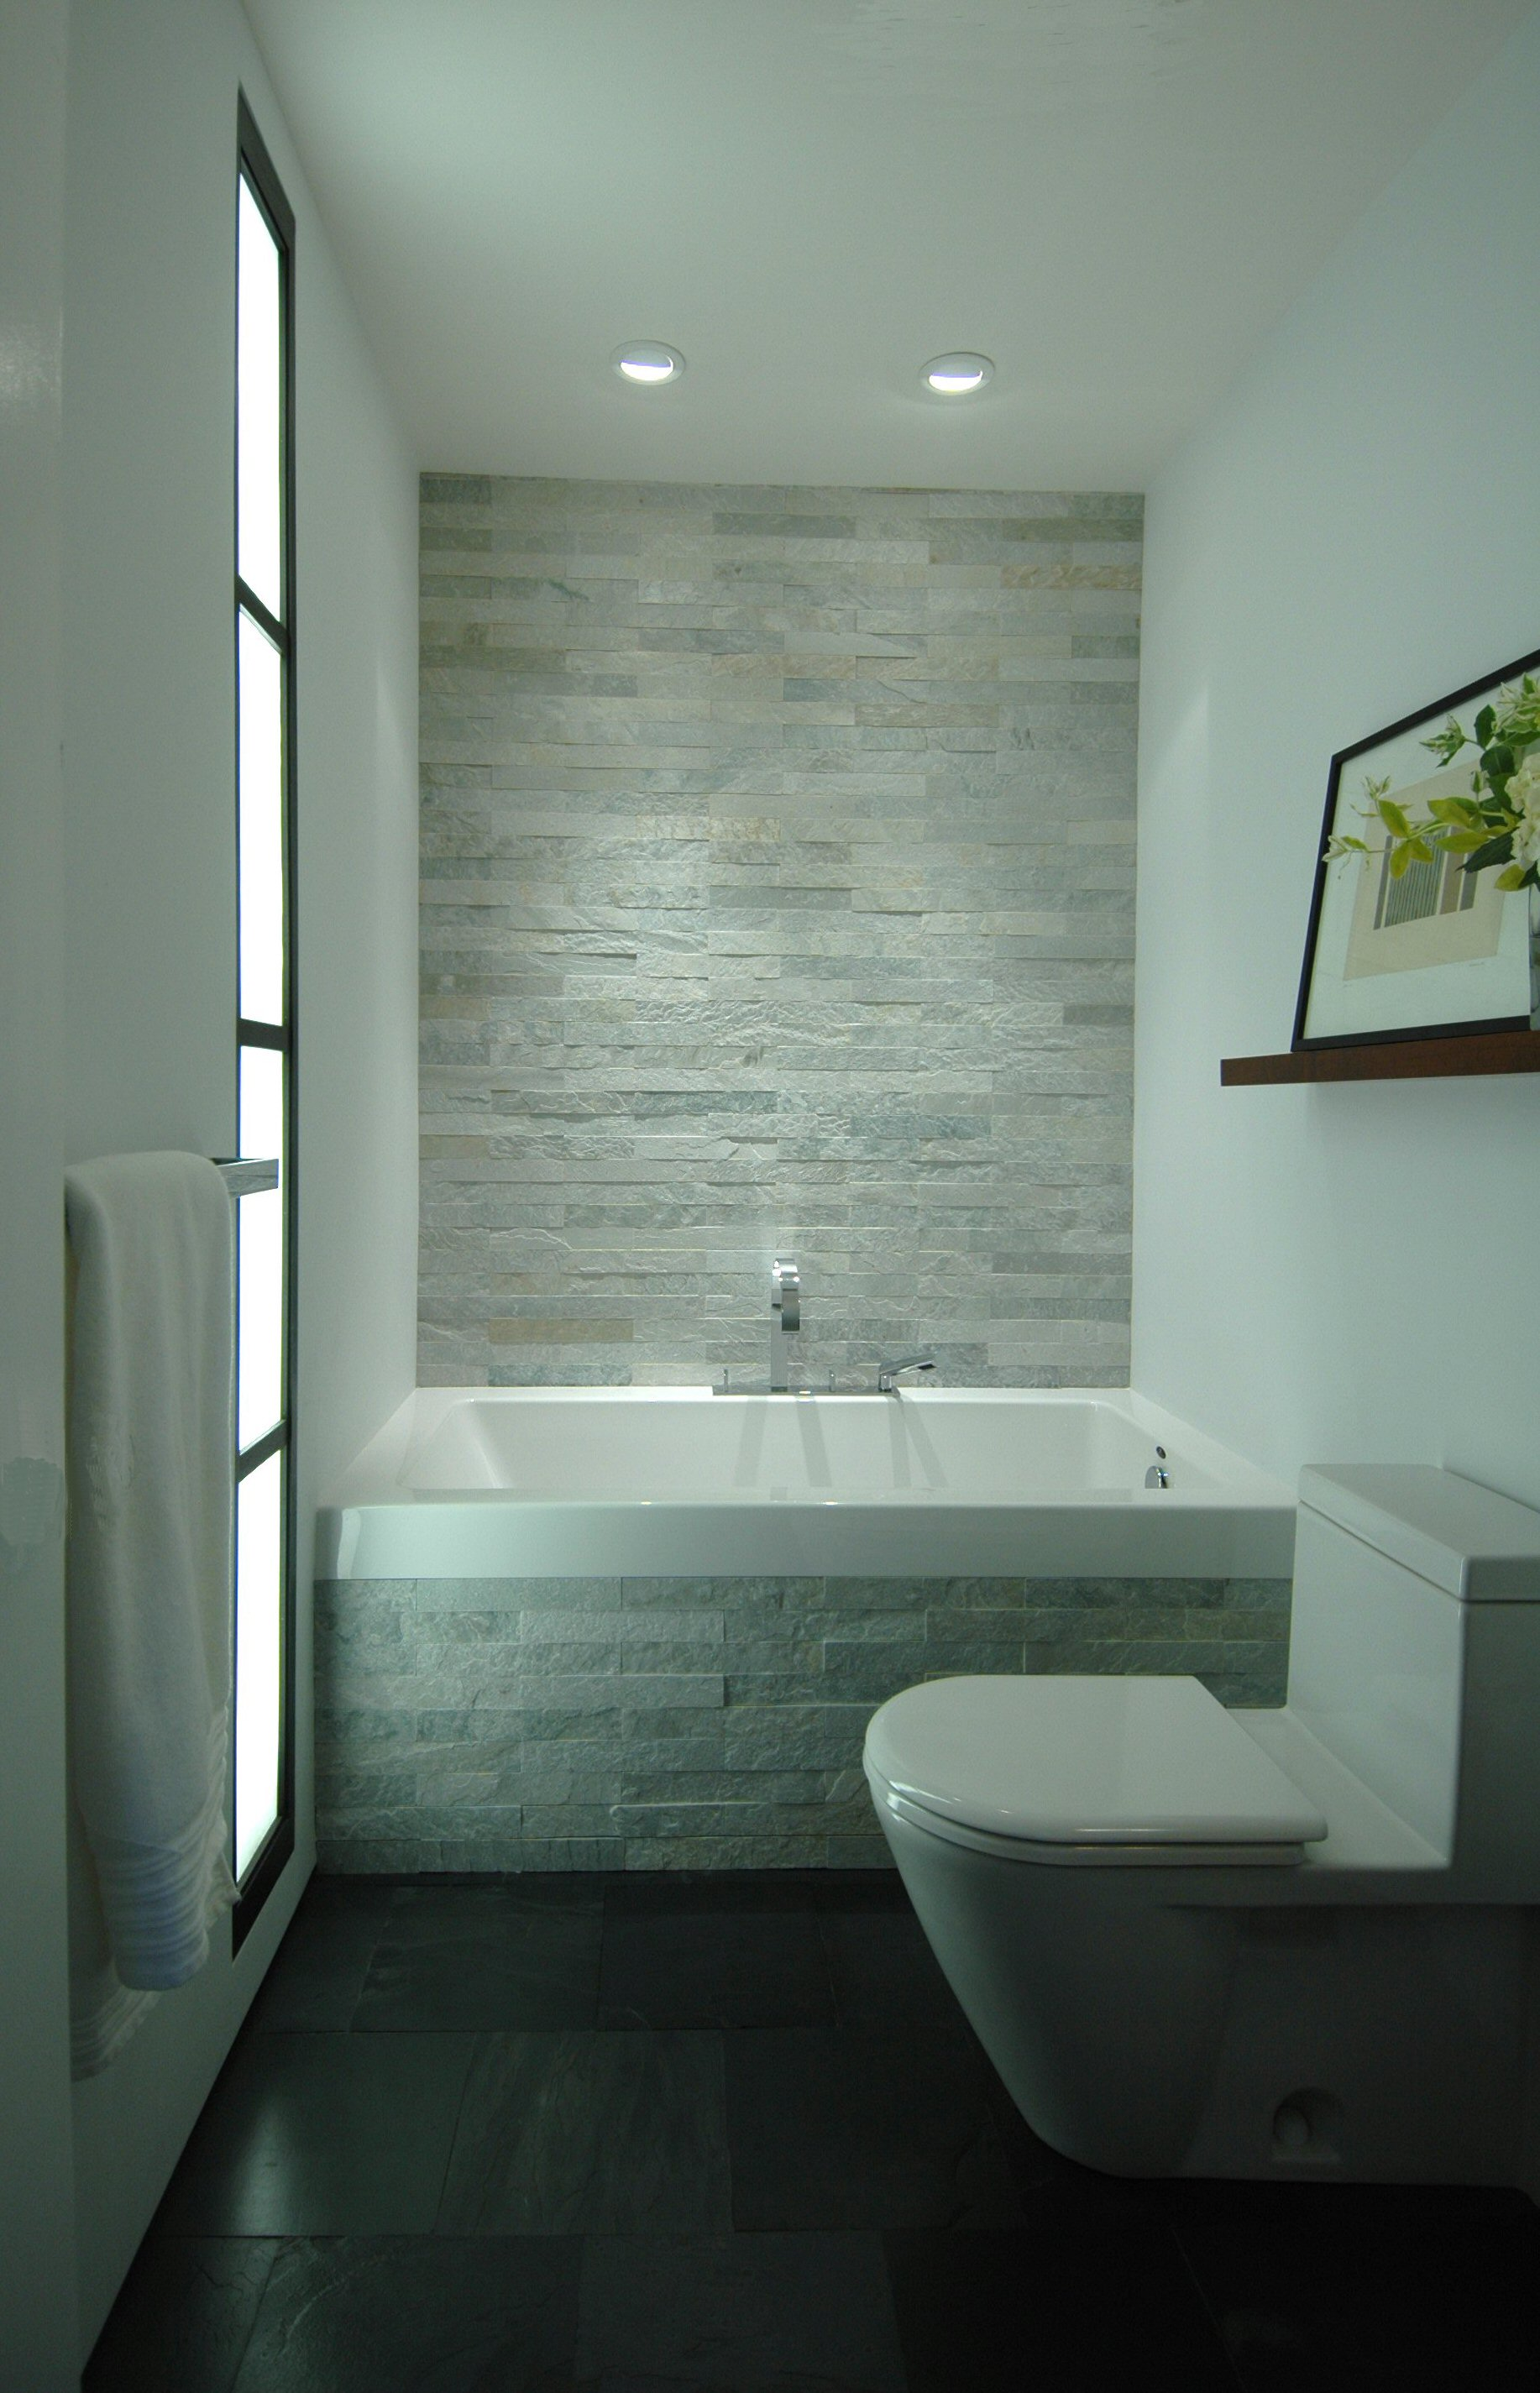 Modern spa-like bathrooms created from ordinary, windowless bathrooms.